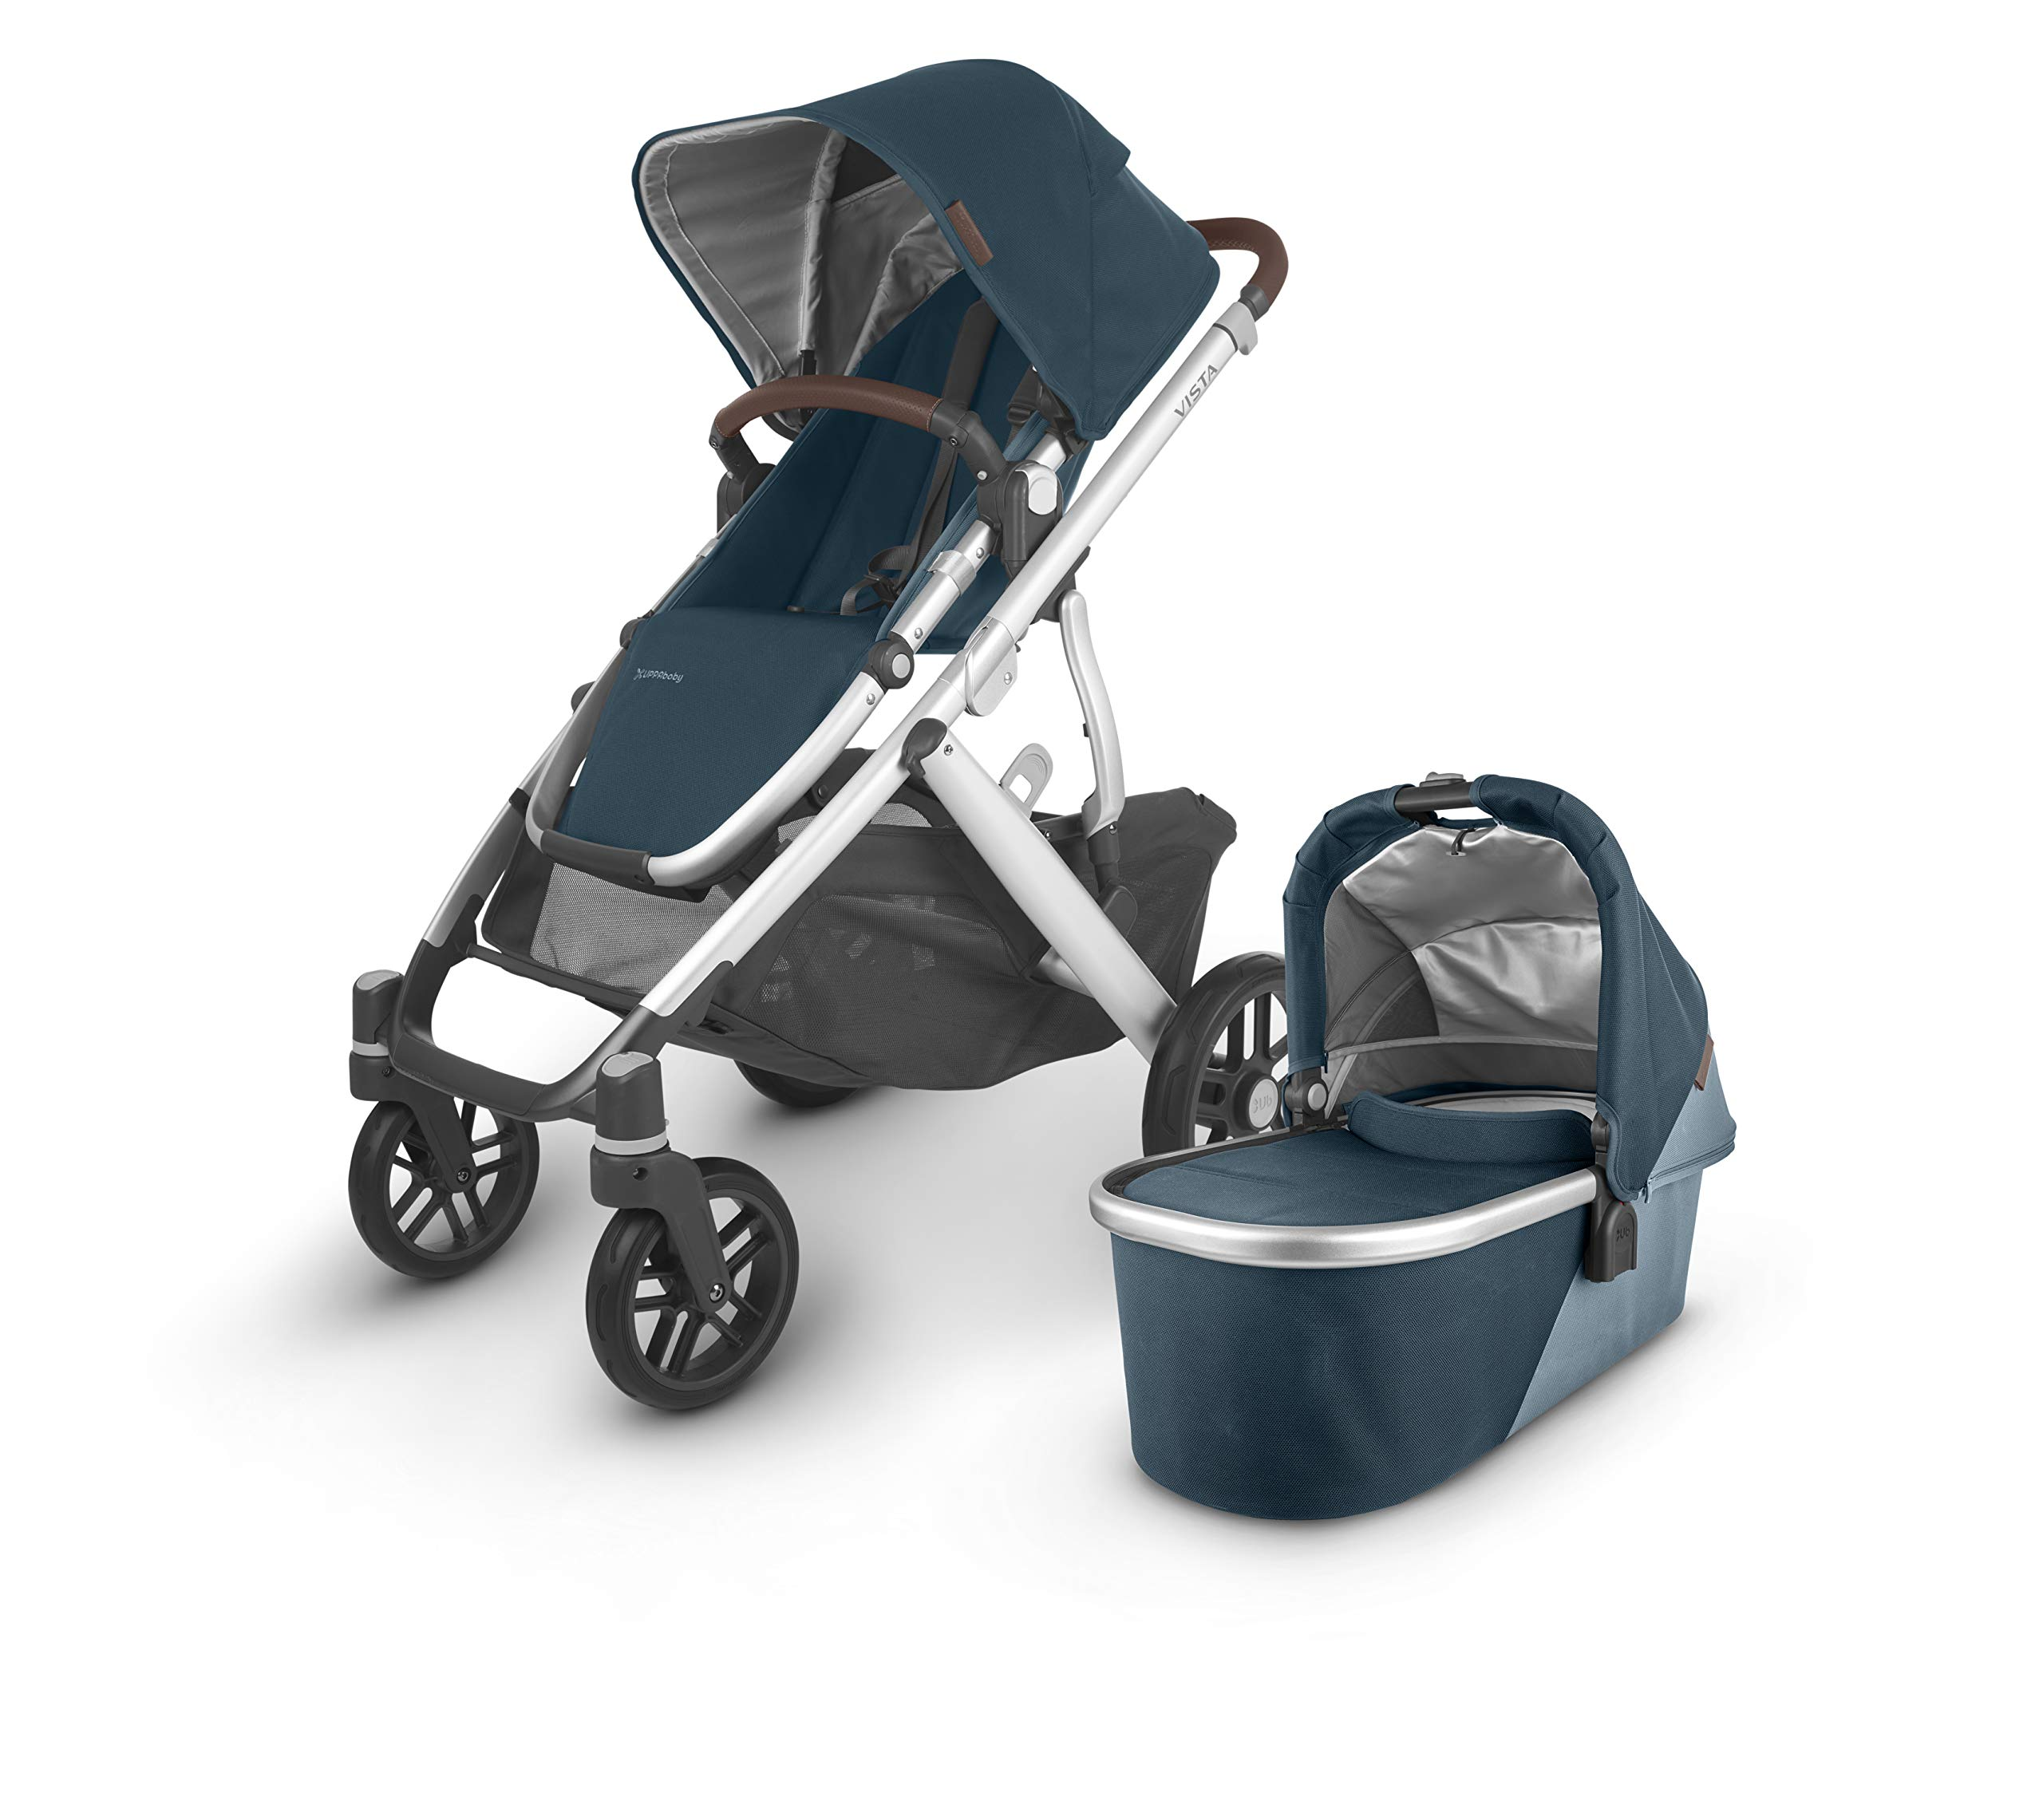 VISTA V2 Stroller - FINN (deep sea/silver/chestnut leather)